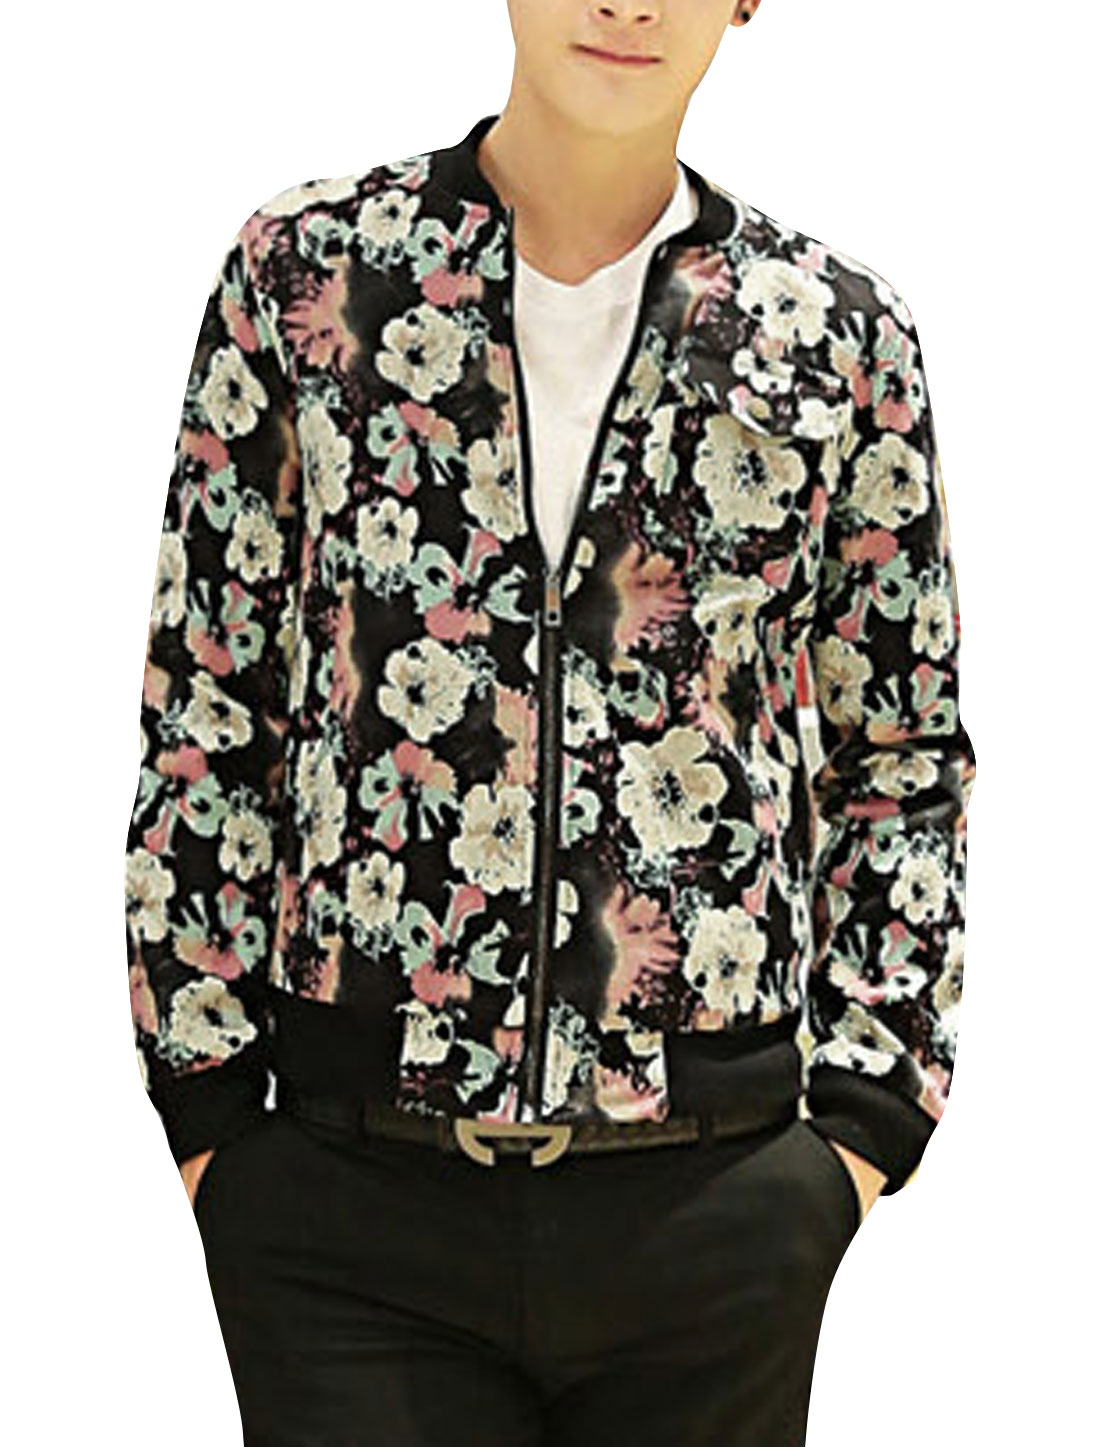 Men Ribbed Cuffs Allover Flower Print Fashion Jacket Black Pale Red S